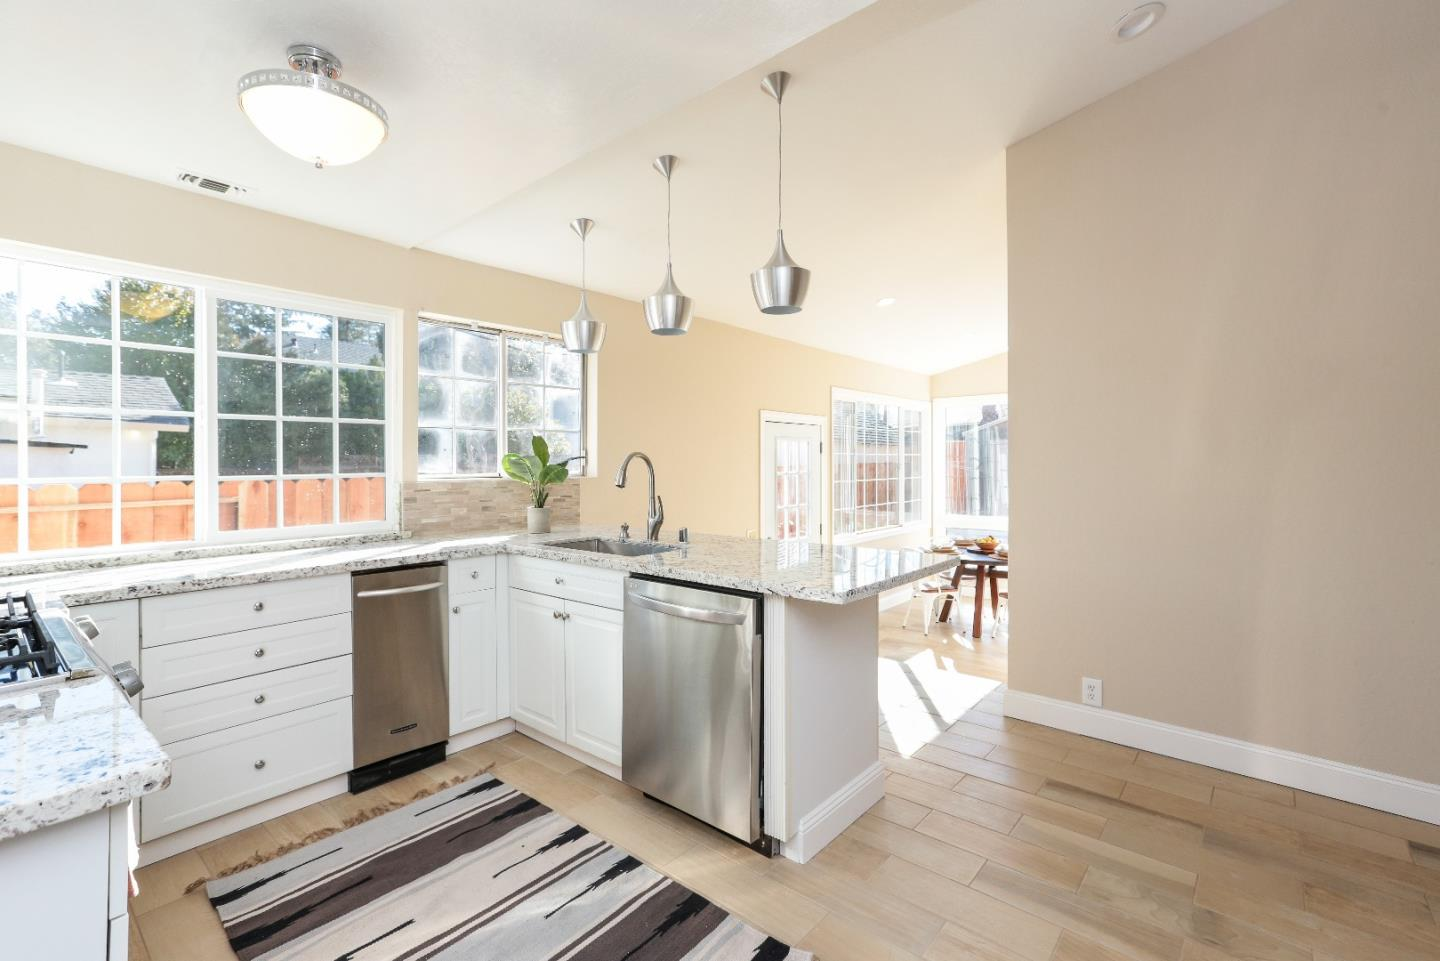 Additional photo for property listing at 1018 Hazel Ave  CAMPBELL, CALIFORNIA 95008